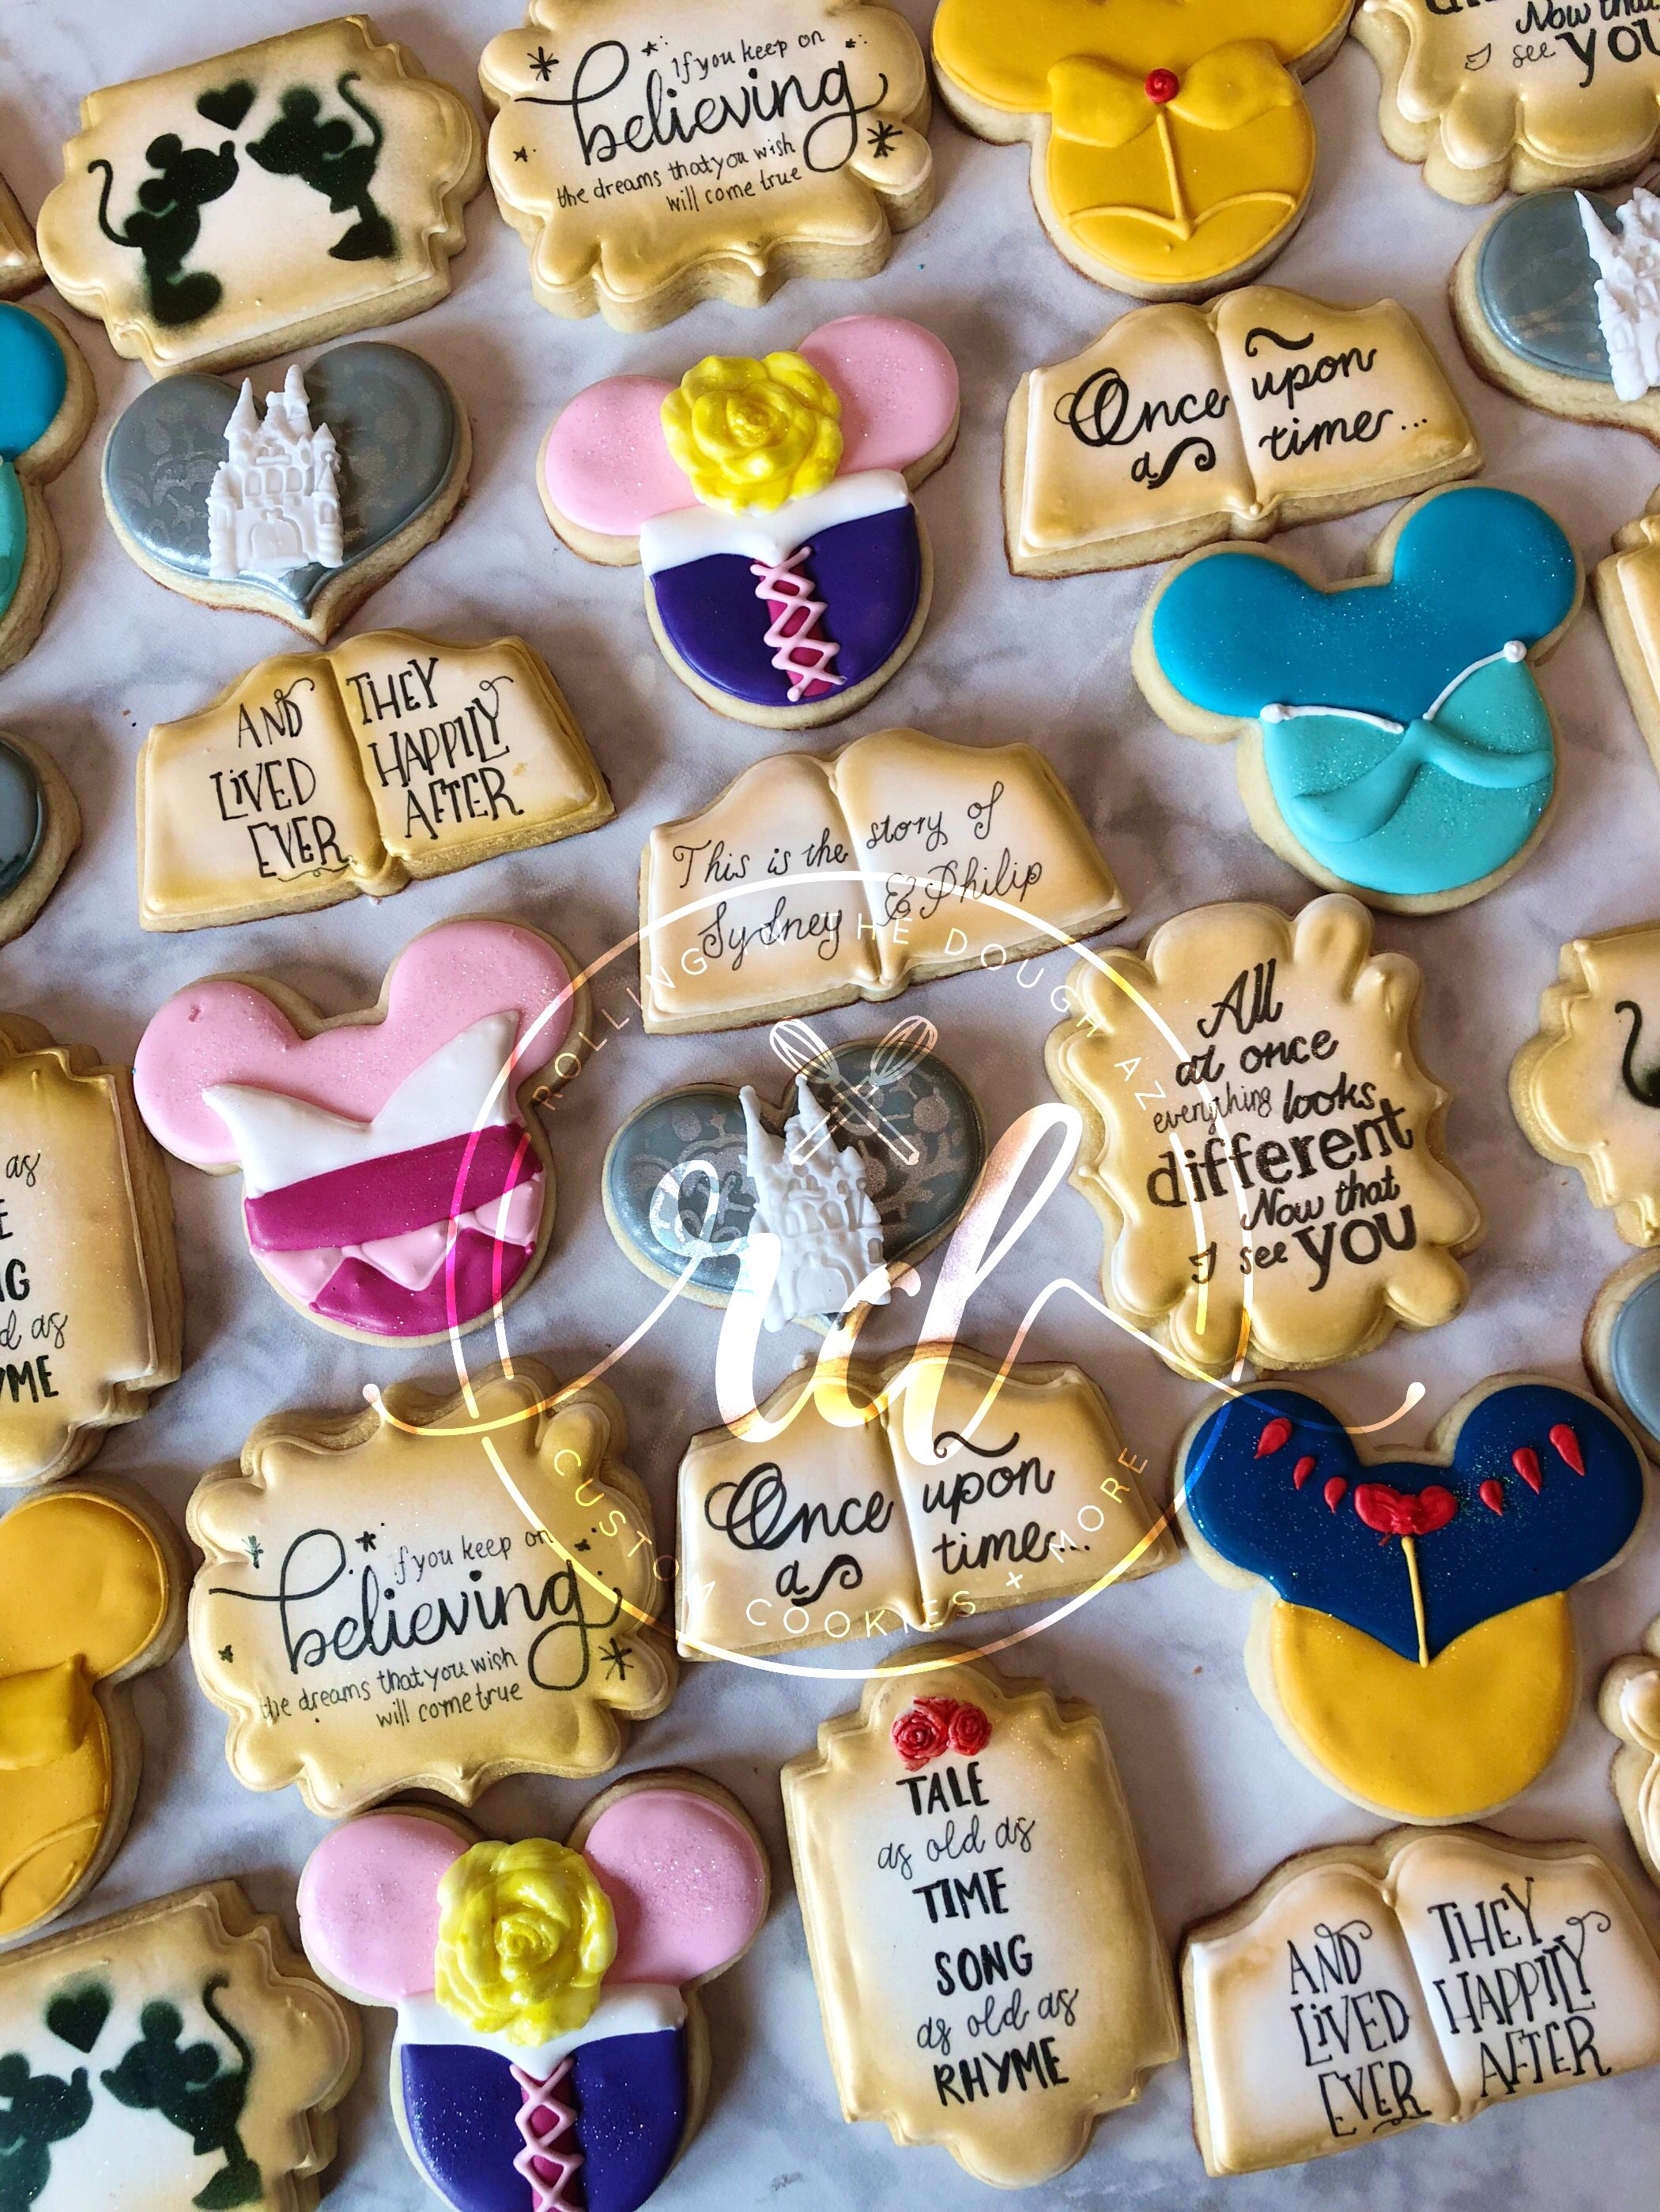 Decorated cookies with images wedding cookies